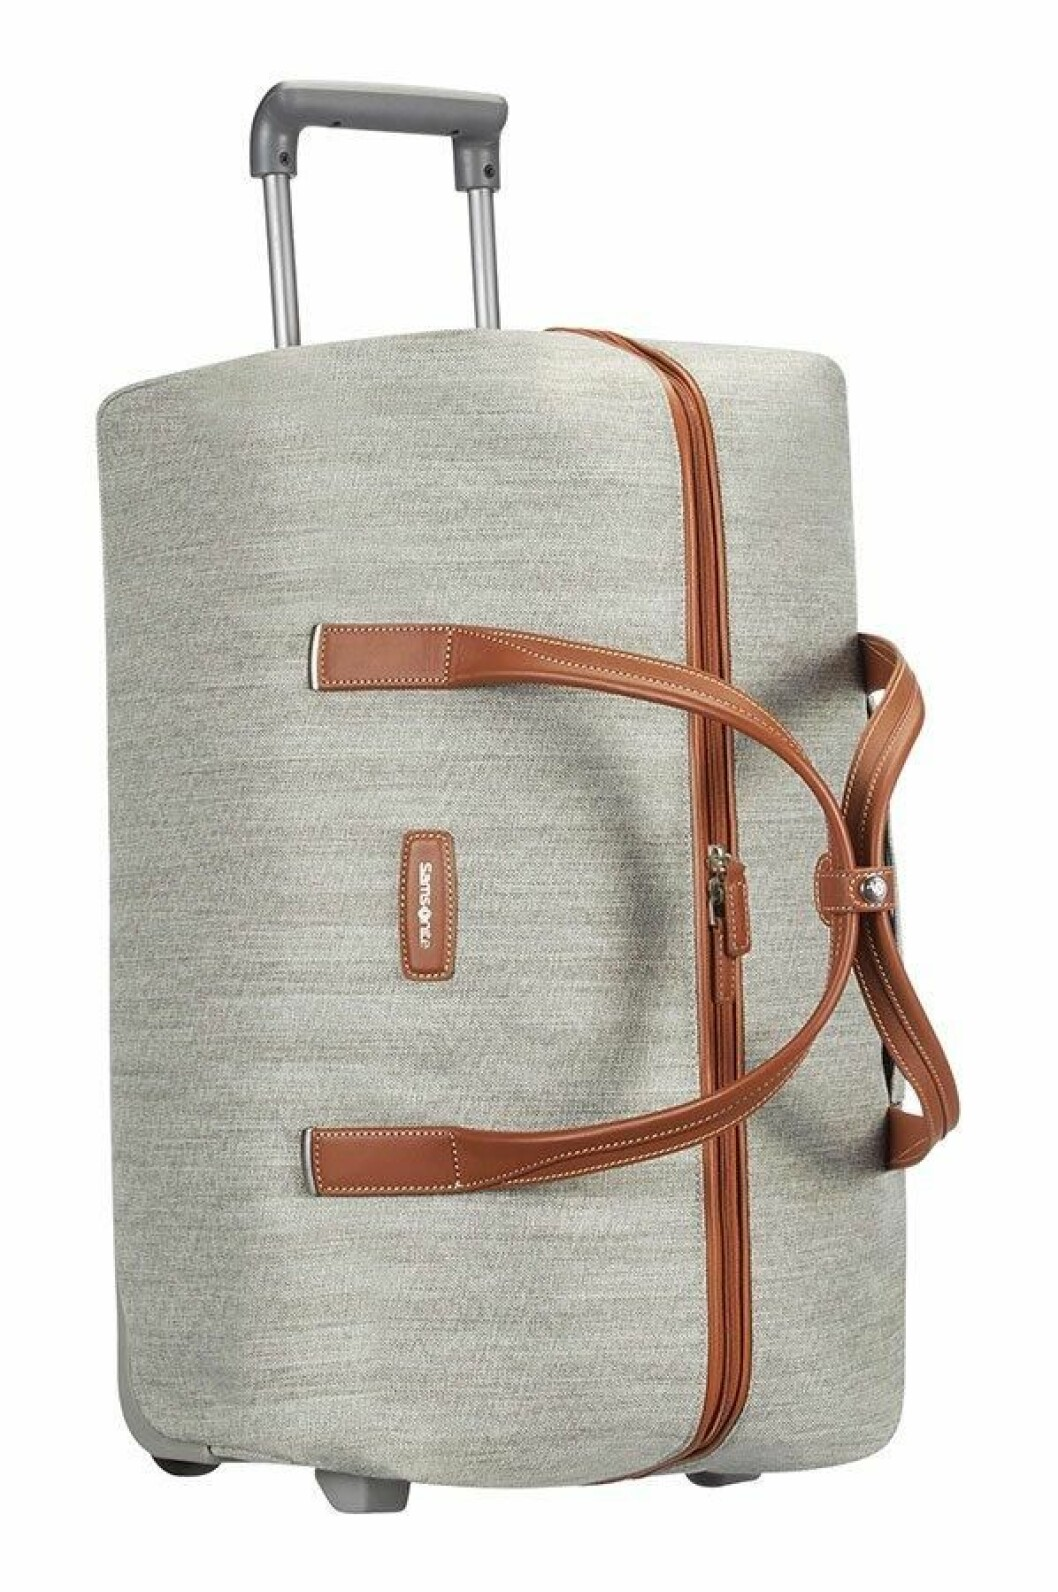 Samsonite |2600,-| https://chillout.no/collections/bagger/products/samsonite-dlx-duffle-wheels?variant=7413674639418